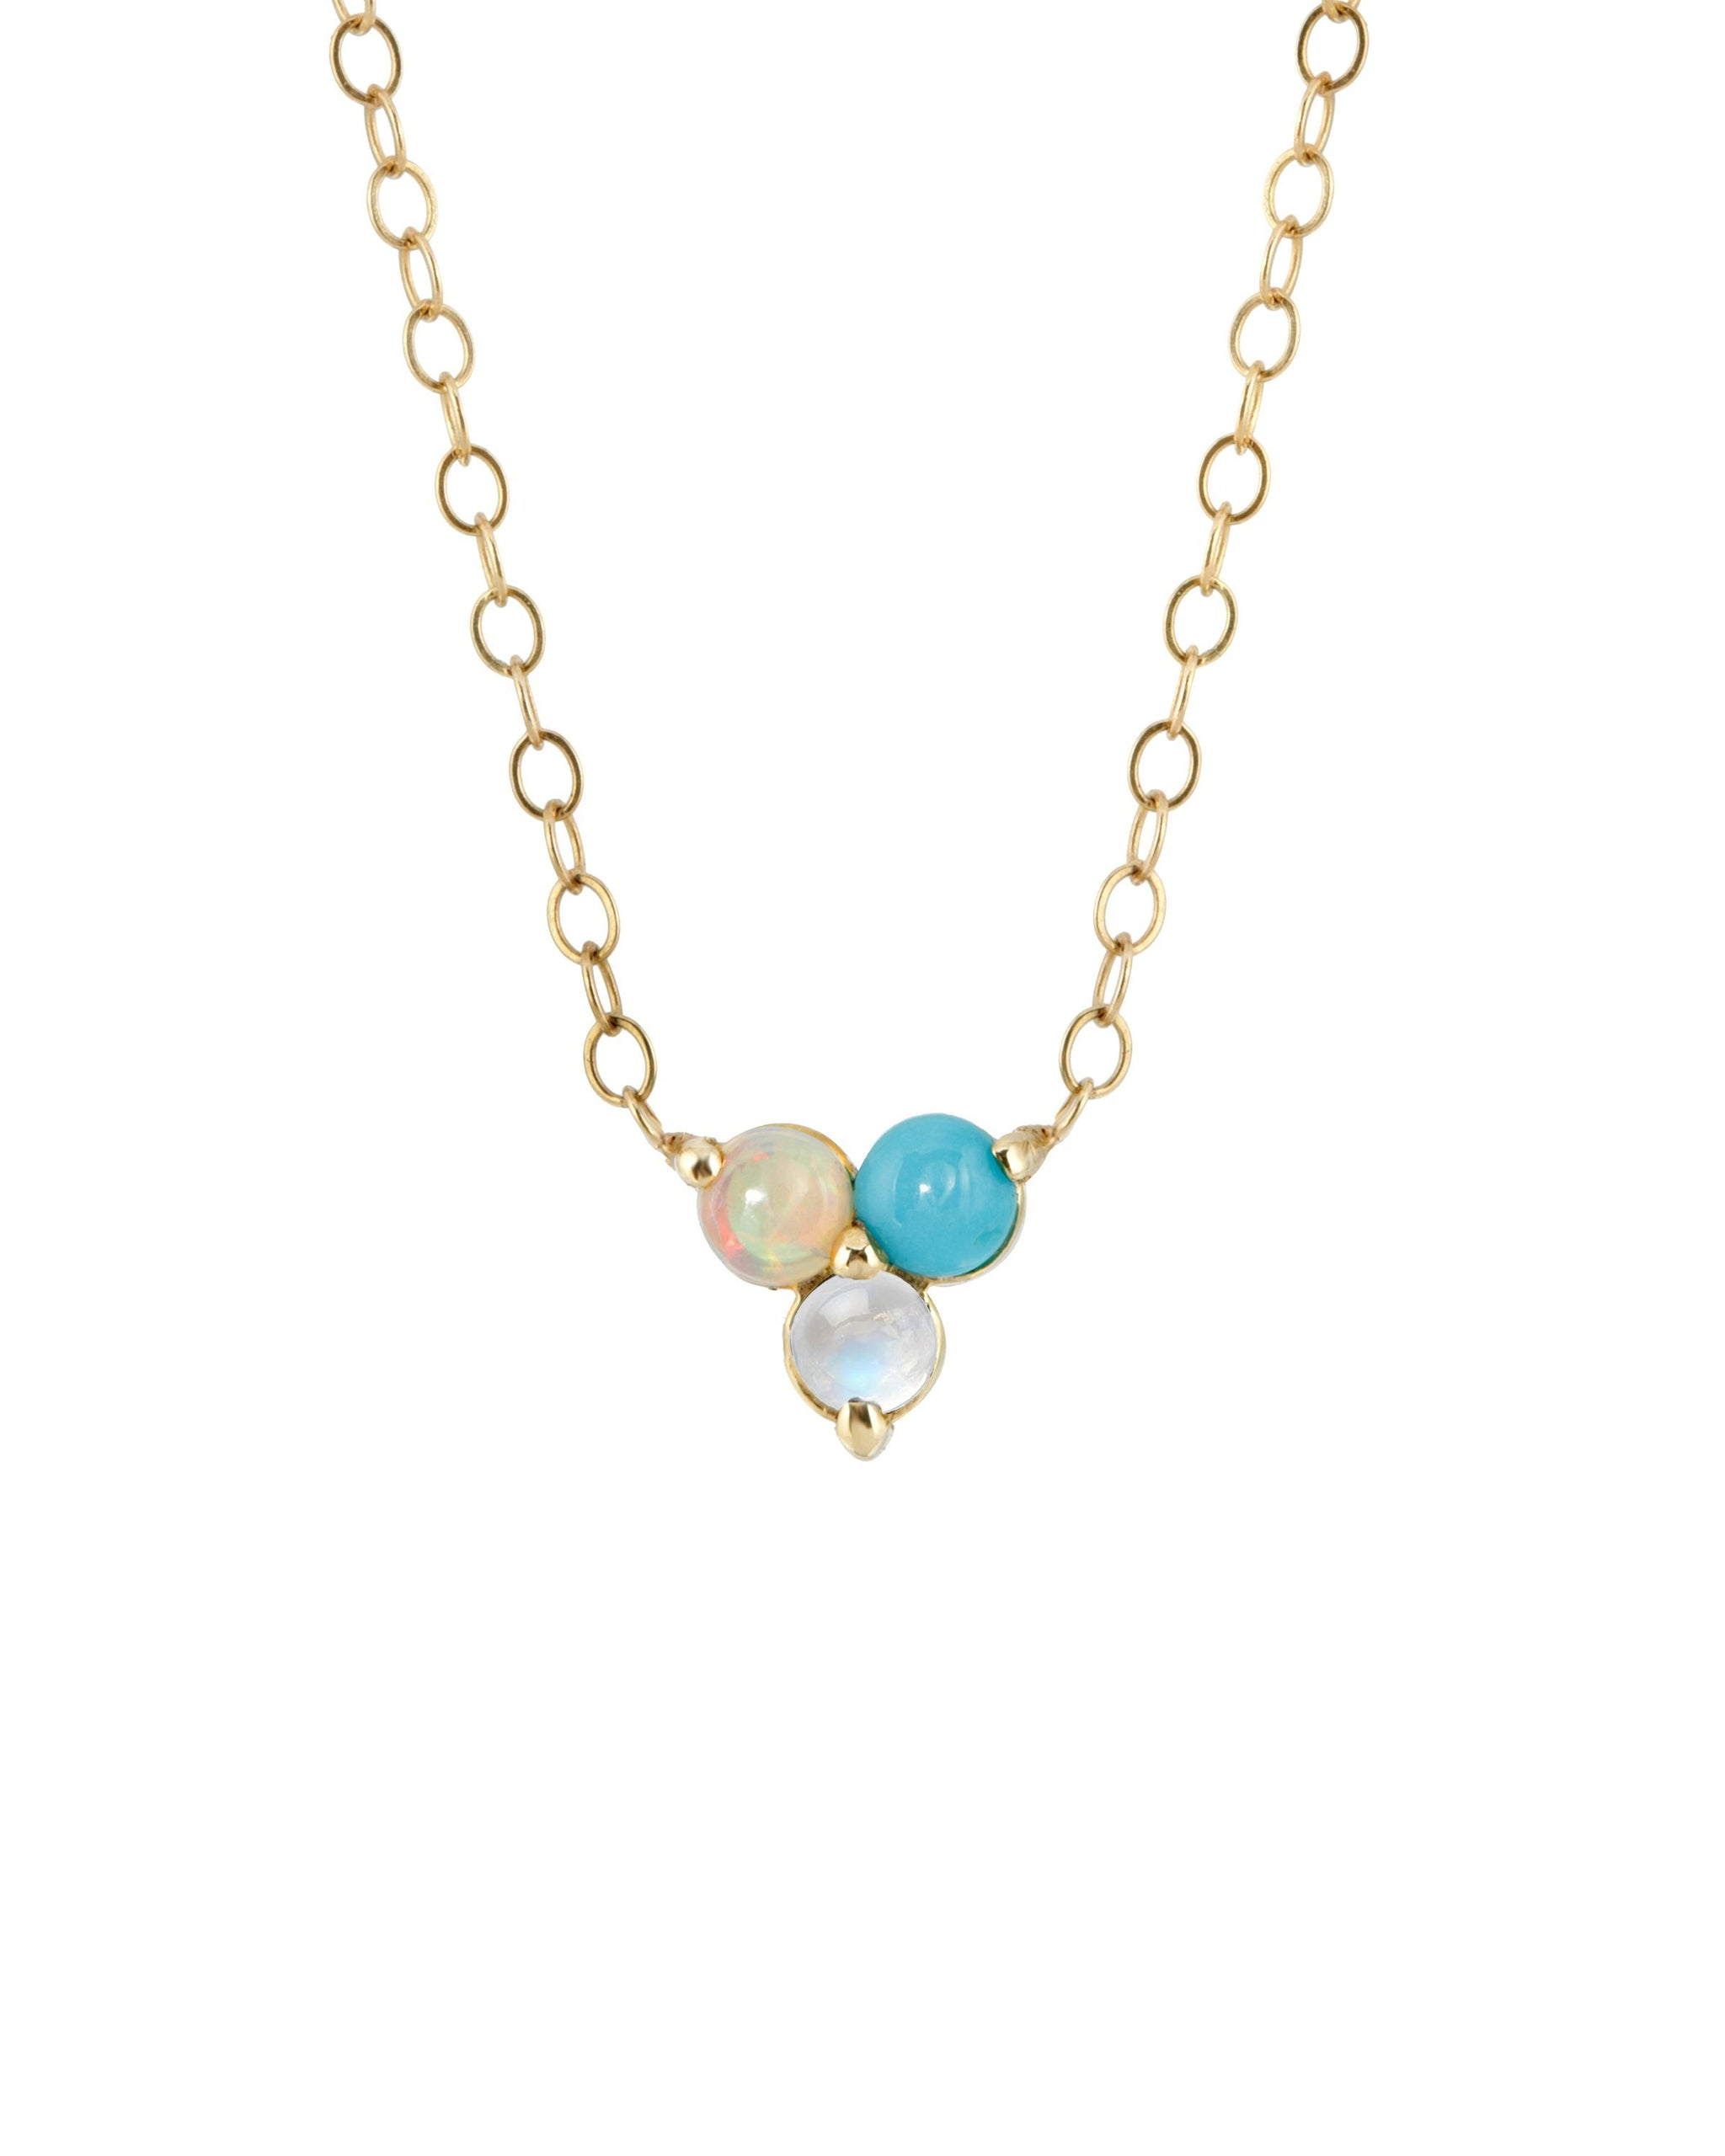 AURA NECKLACE - TURQUOISE + TOBACCO